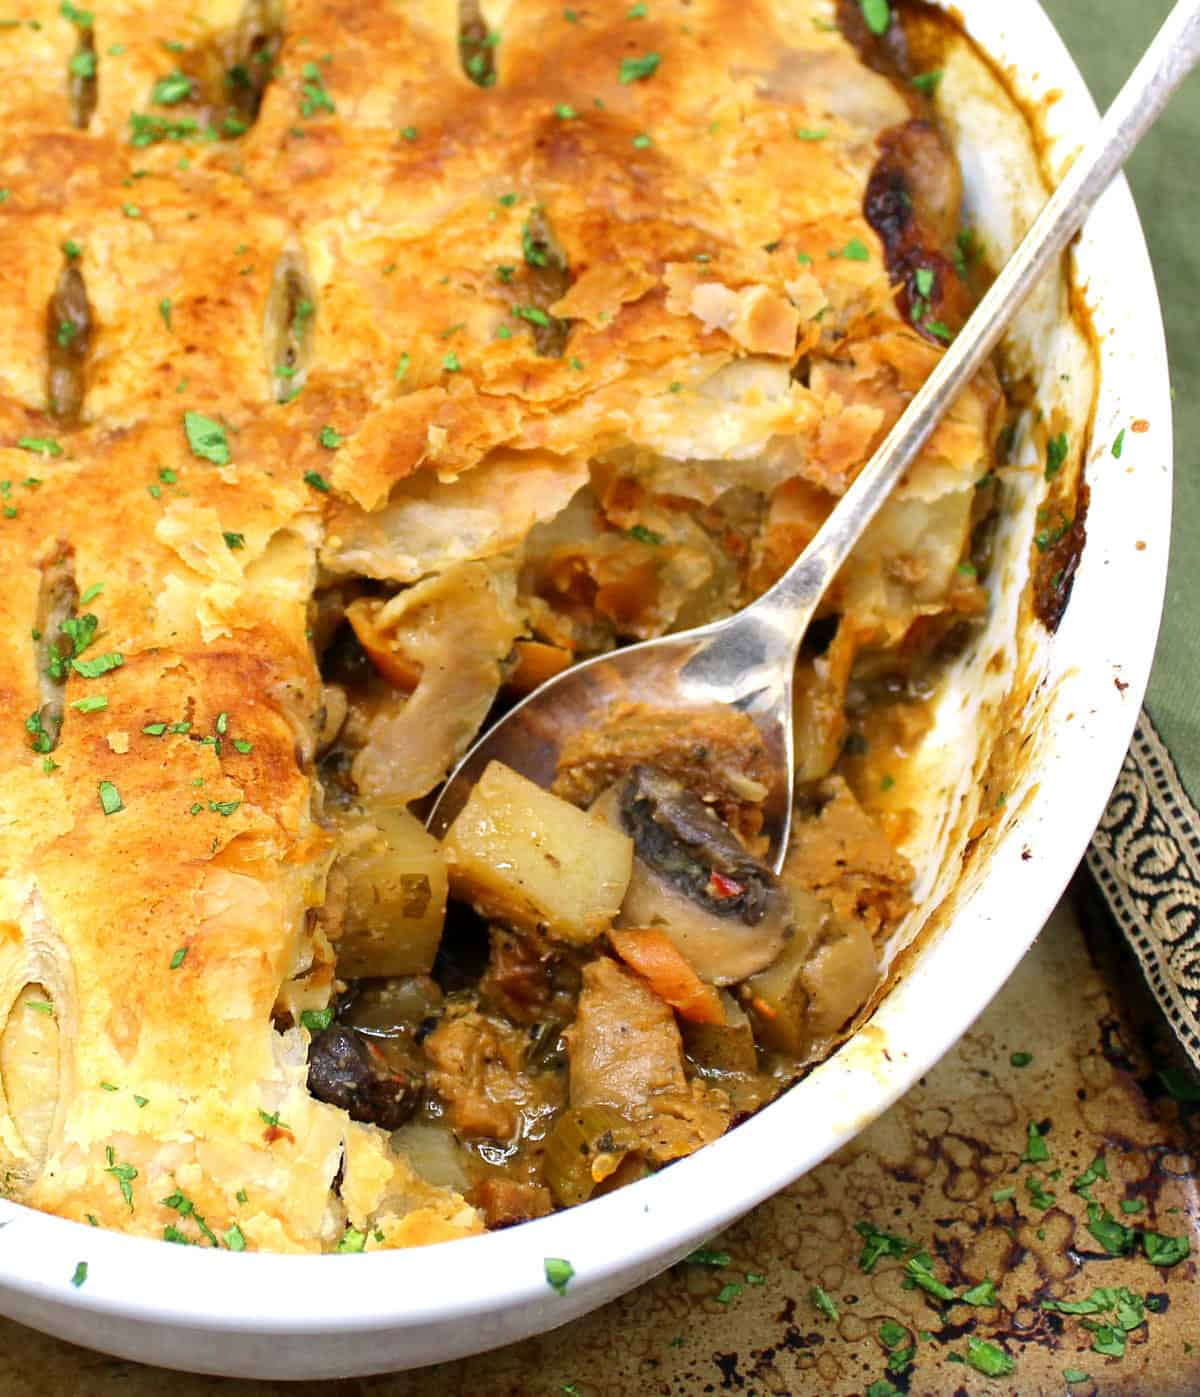 An oval white baking dish with a vegan pot pie that has a flaky golden crust made of puff pastry, with a filling of potatoes, mushrooms, carrots, onions, herbs and sausage on a baking sheet with a green napkin